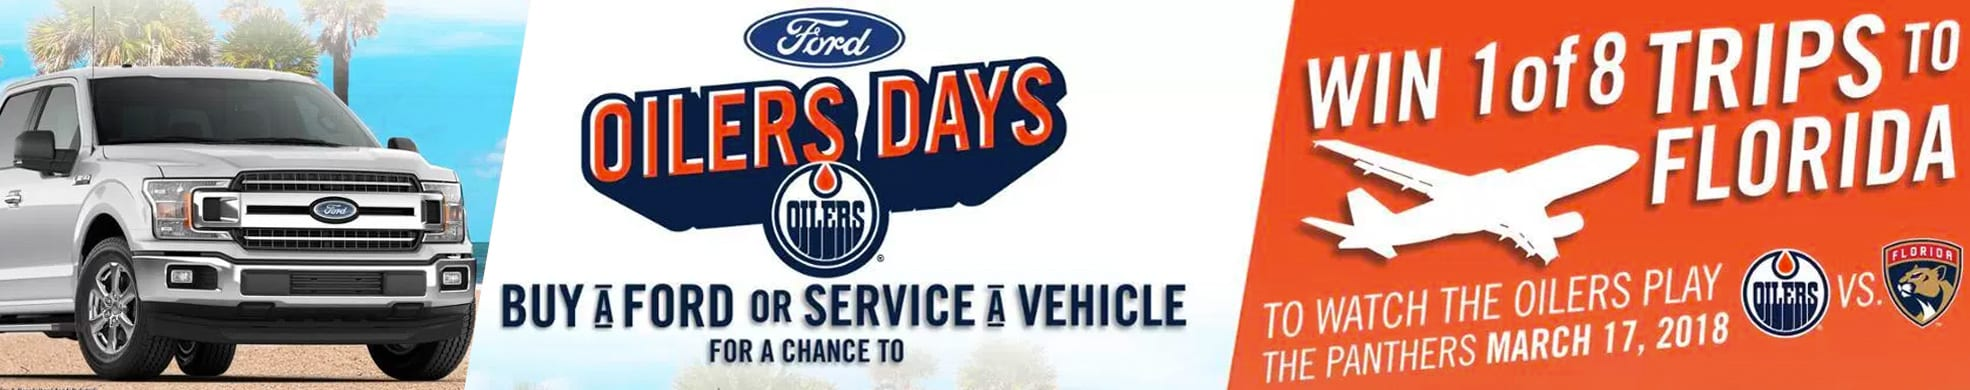 Ford Oilers Days at Team Ford